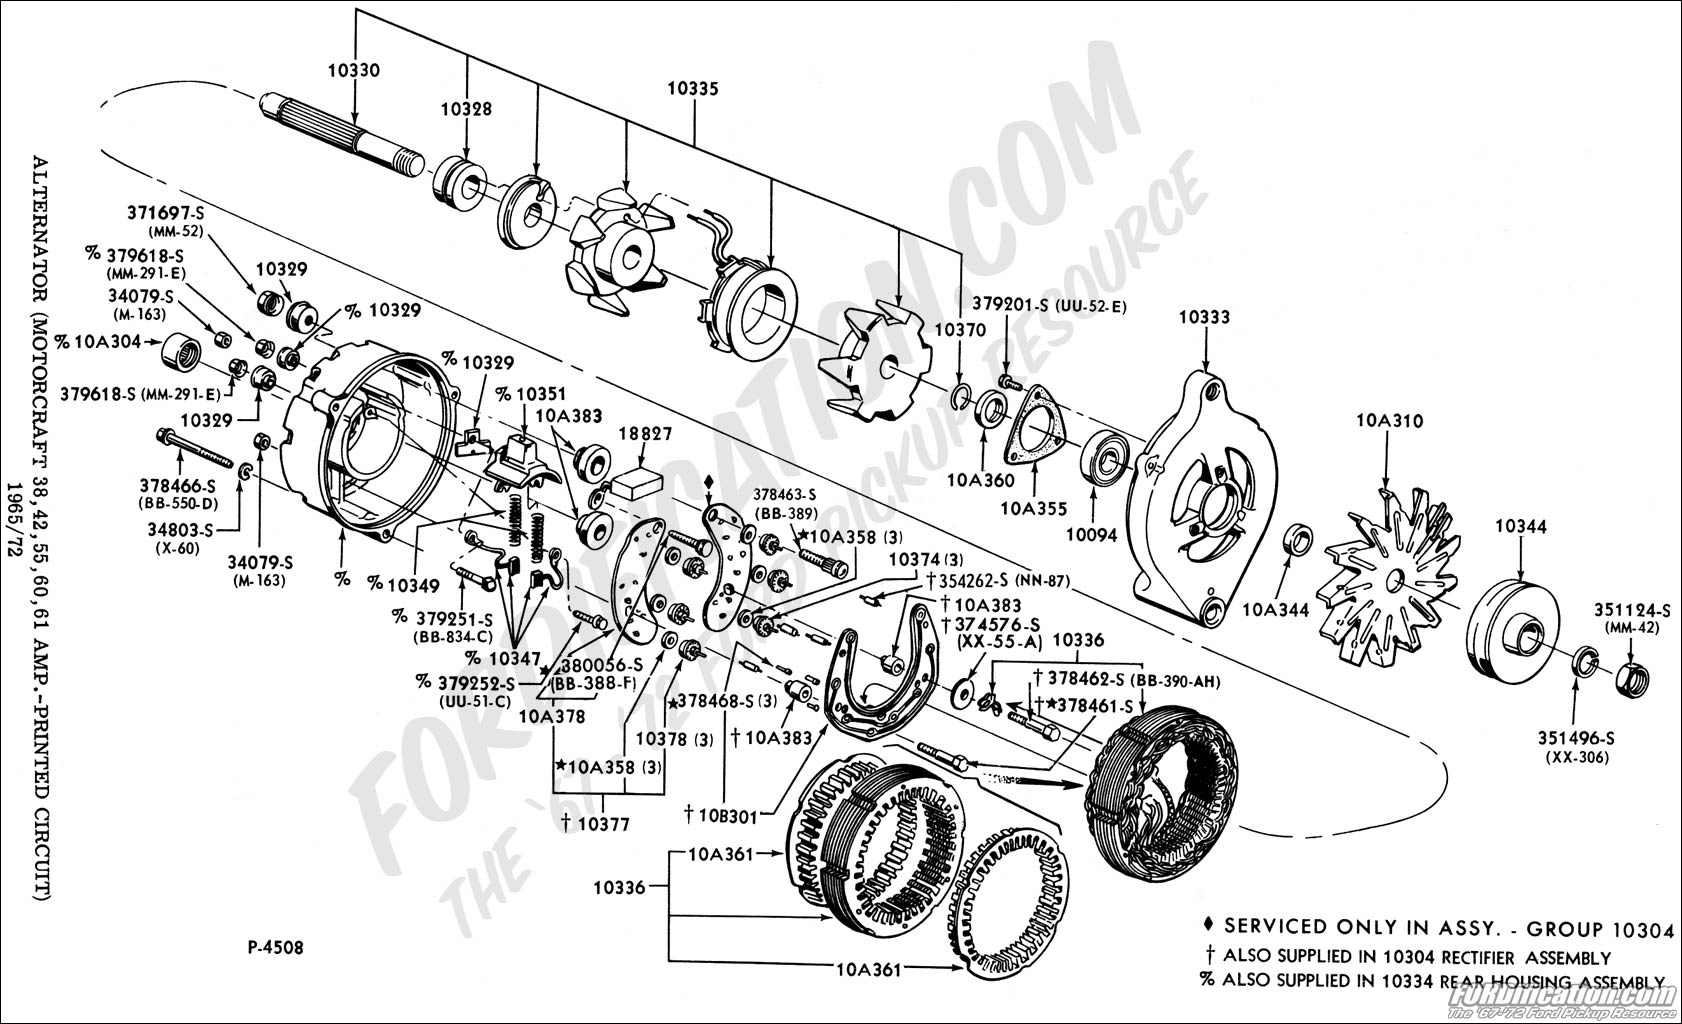 1974 Ford Bronco Alternator Wiring 1970 F100 240 Diagram Data Library Probe